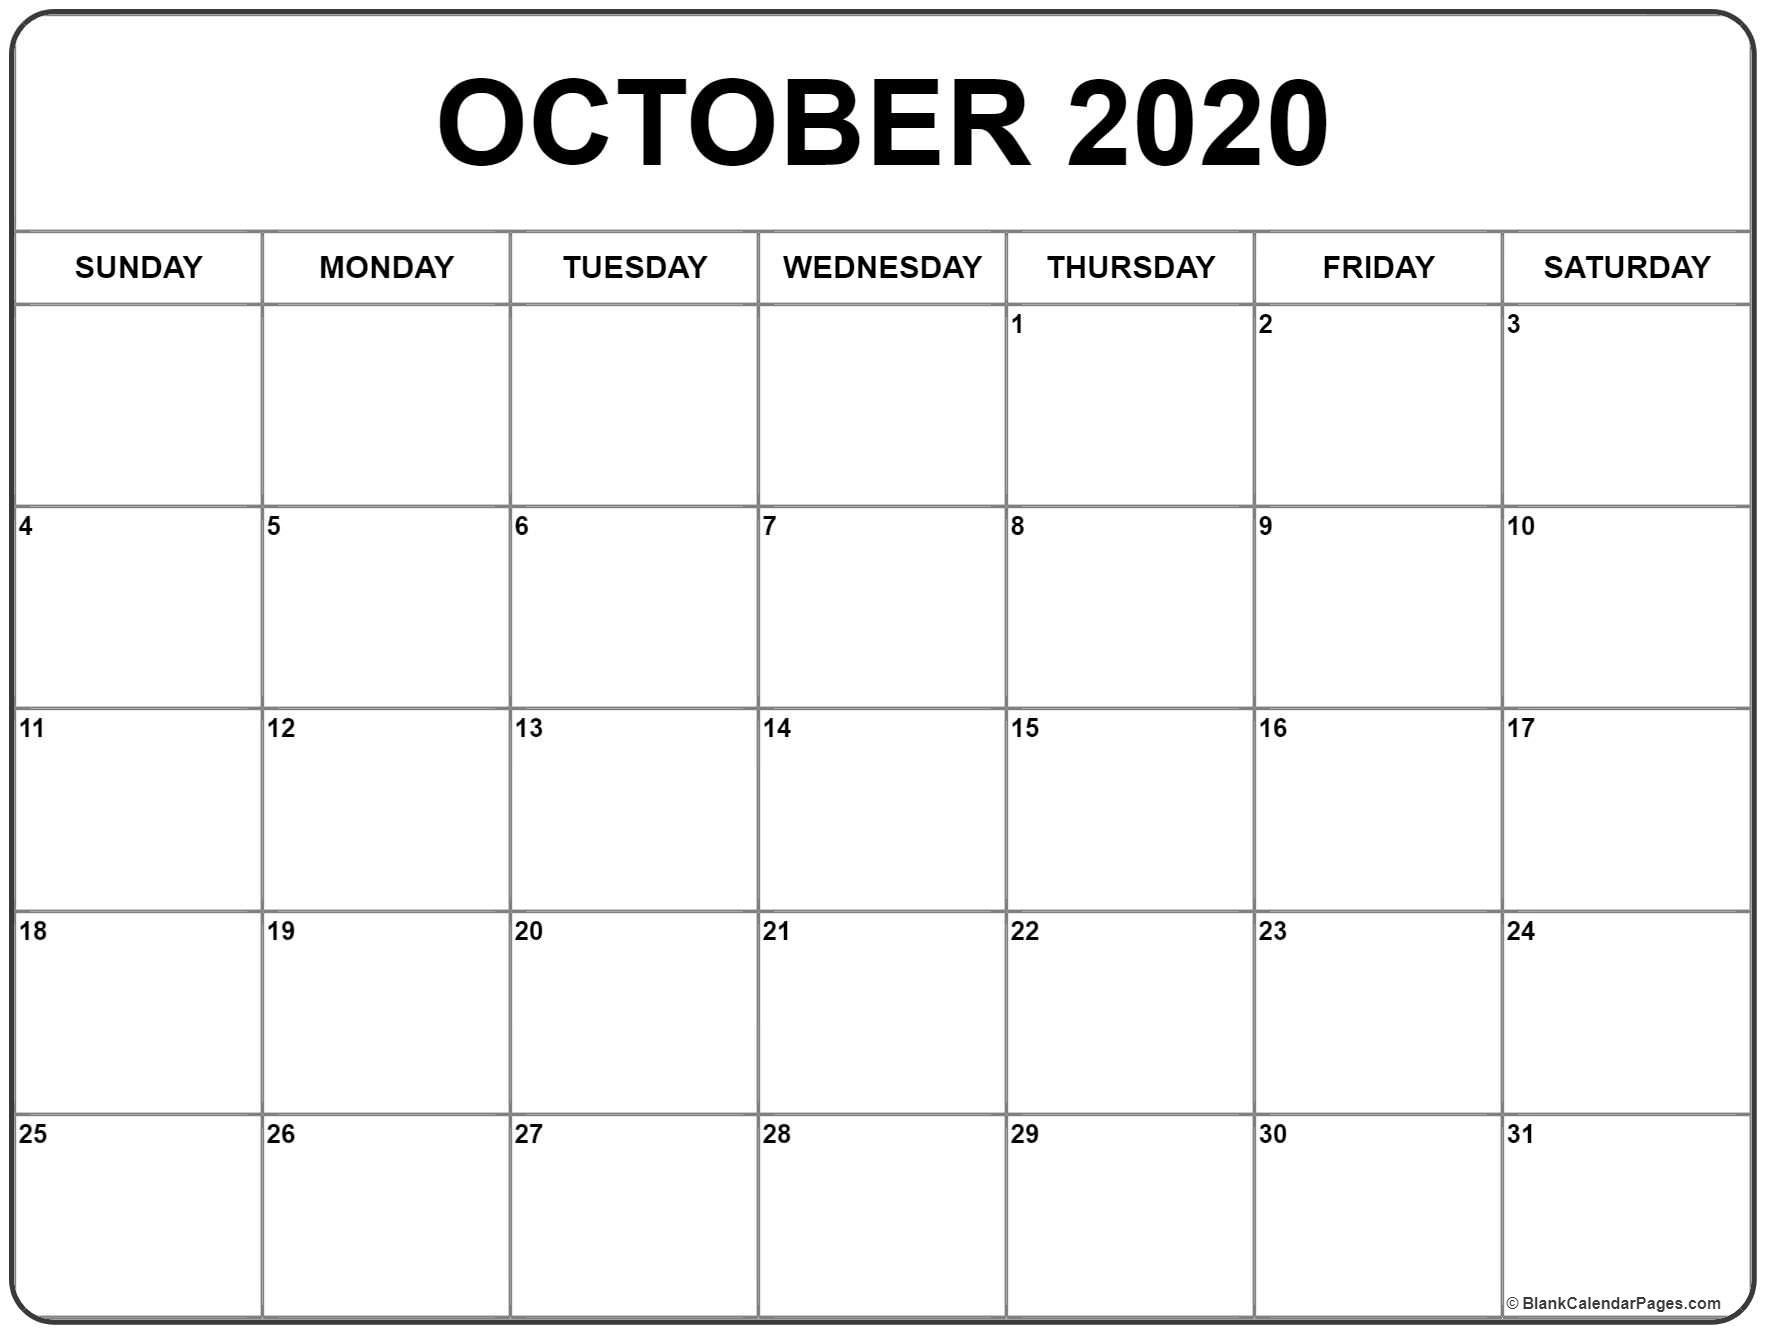 Month Of October 2020 Calendar - Teke.wpart.co